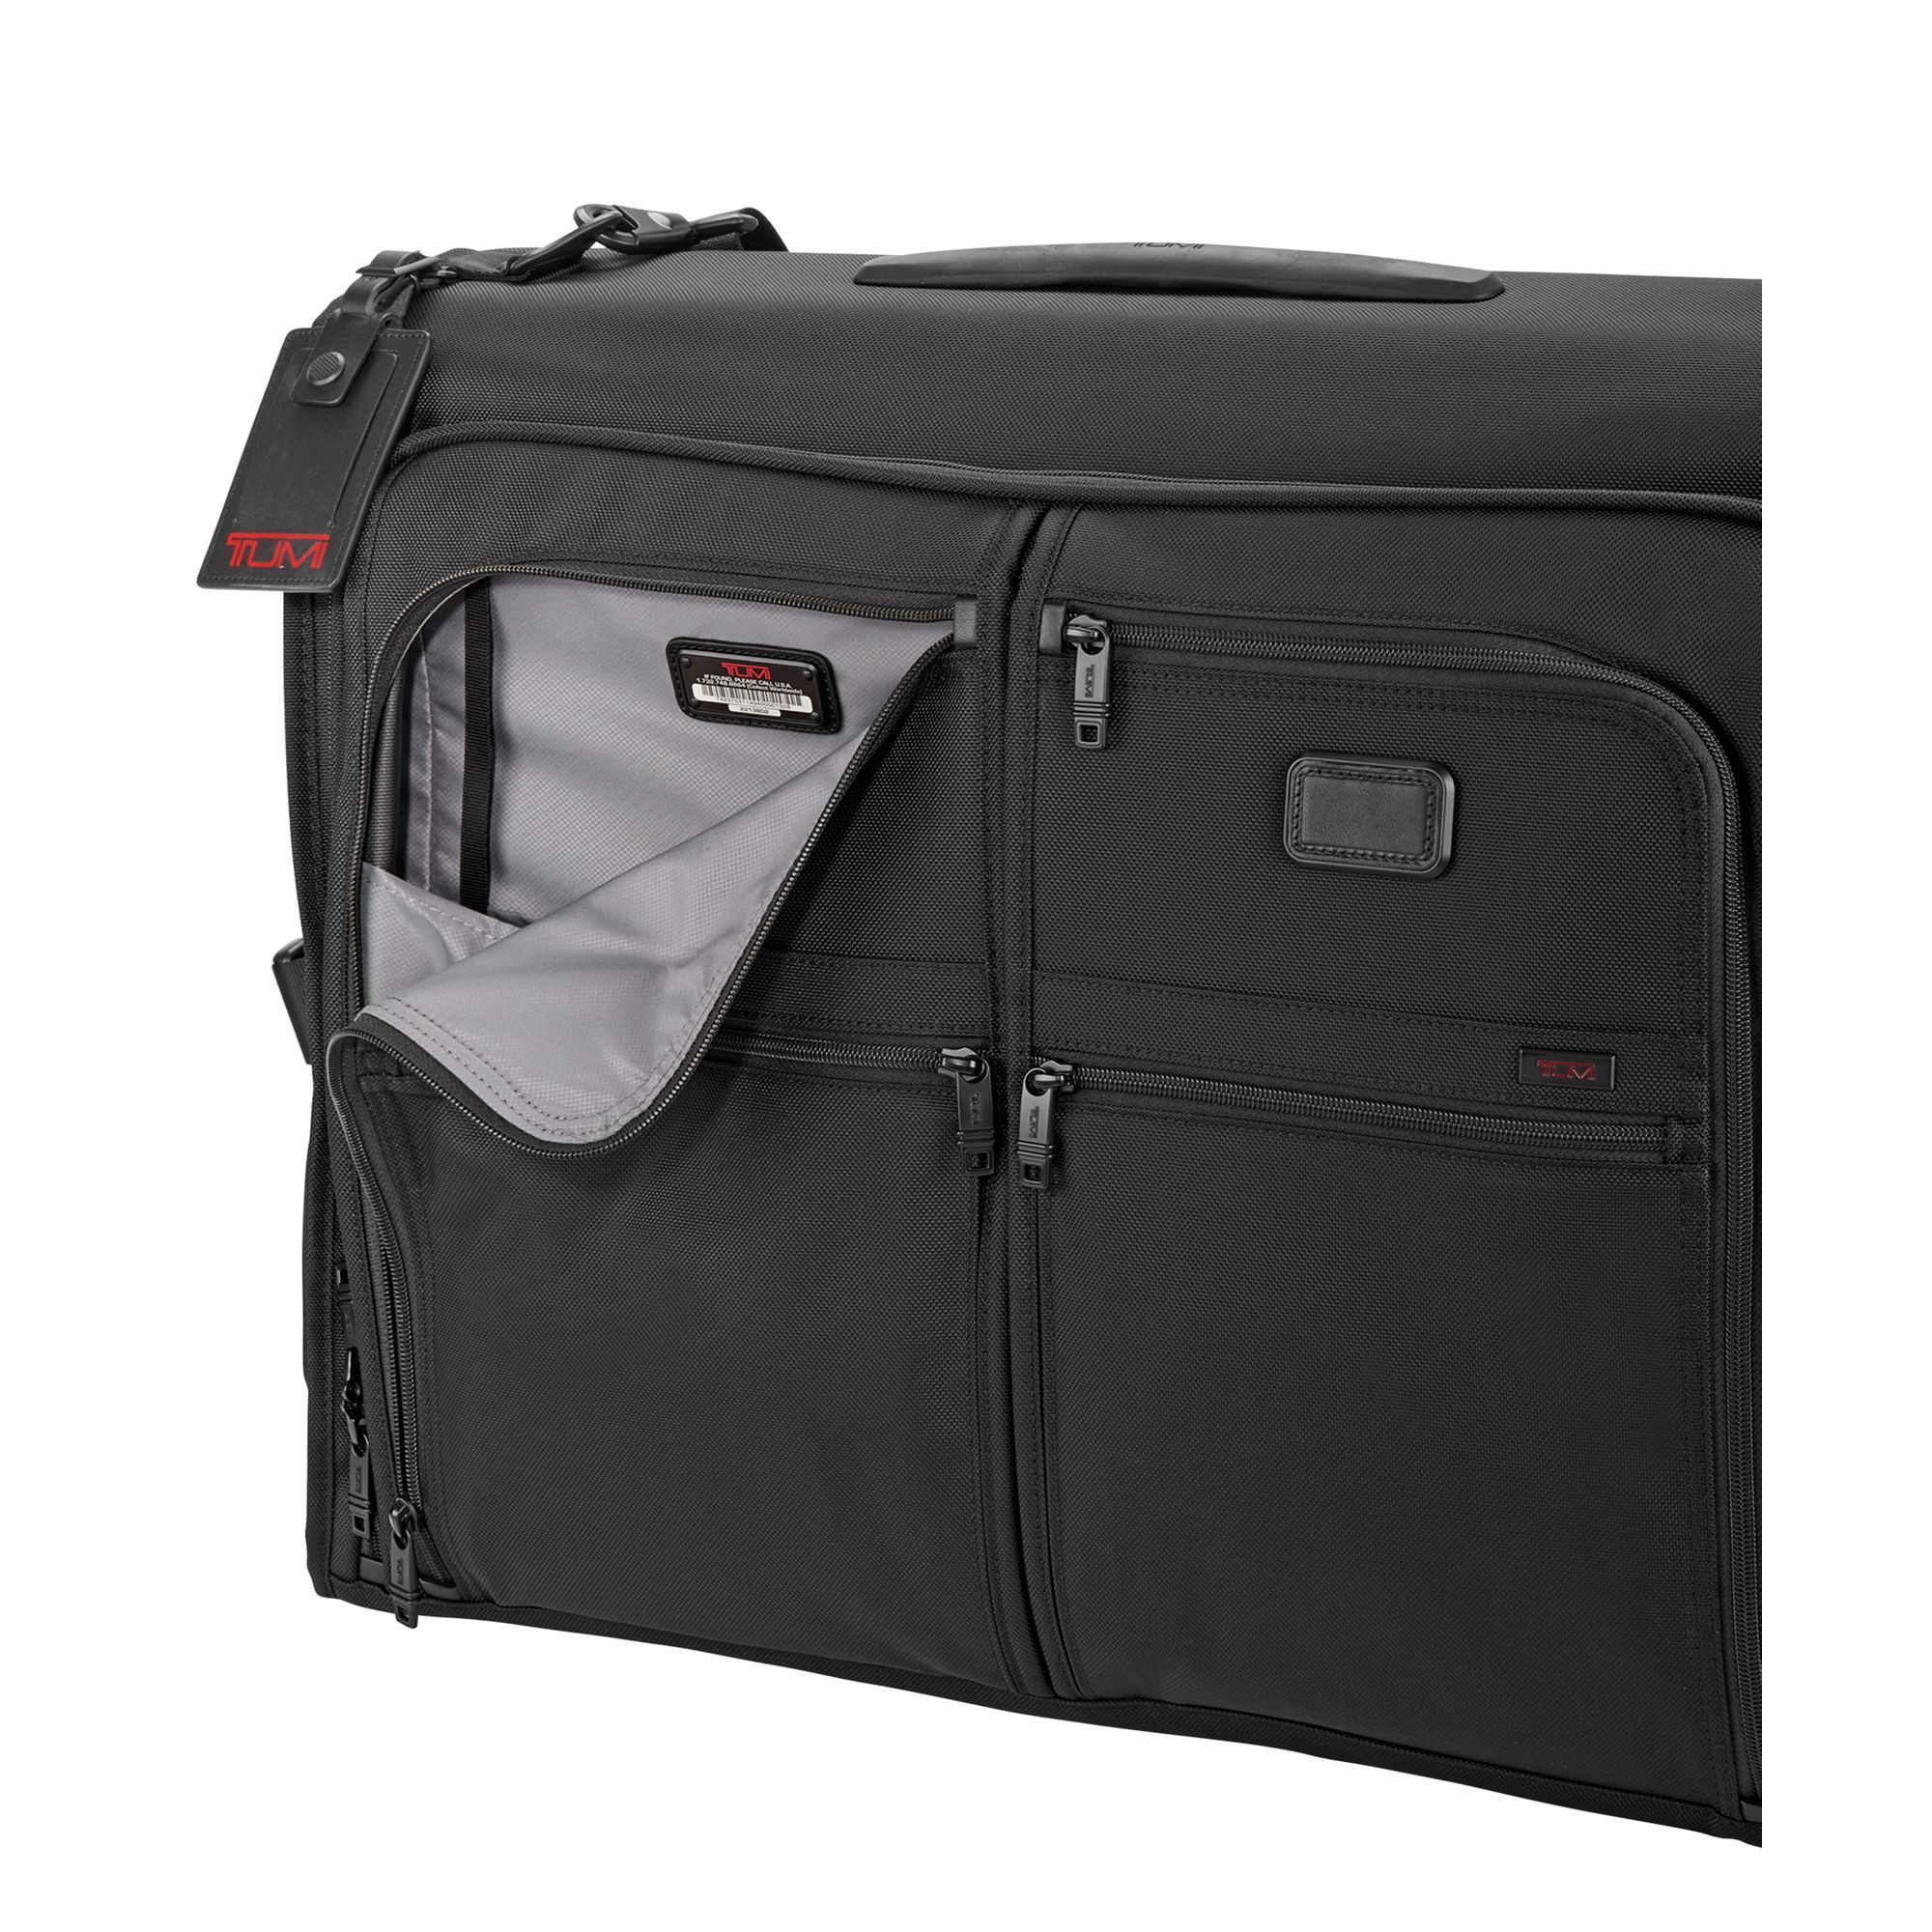 TUMI  ALPHA 2  CLASSIC GARMENT BAG  #22138